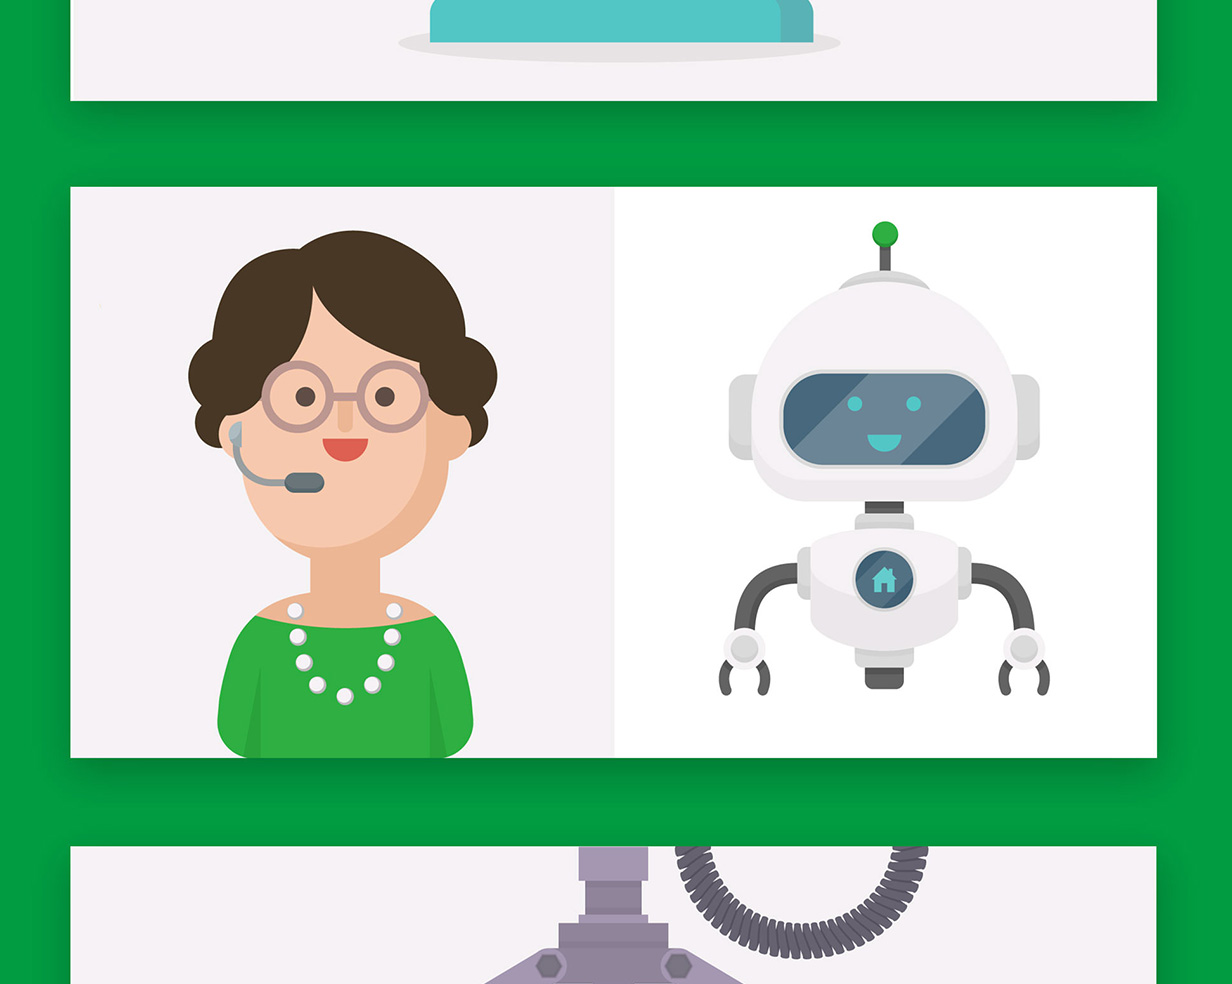 A screen from the Yorkshire Building Society chatbot, one side there is a cartoon woman and on the other side there is a robot